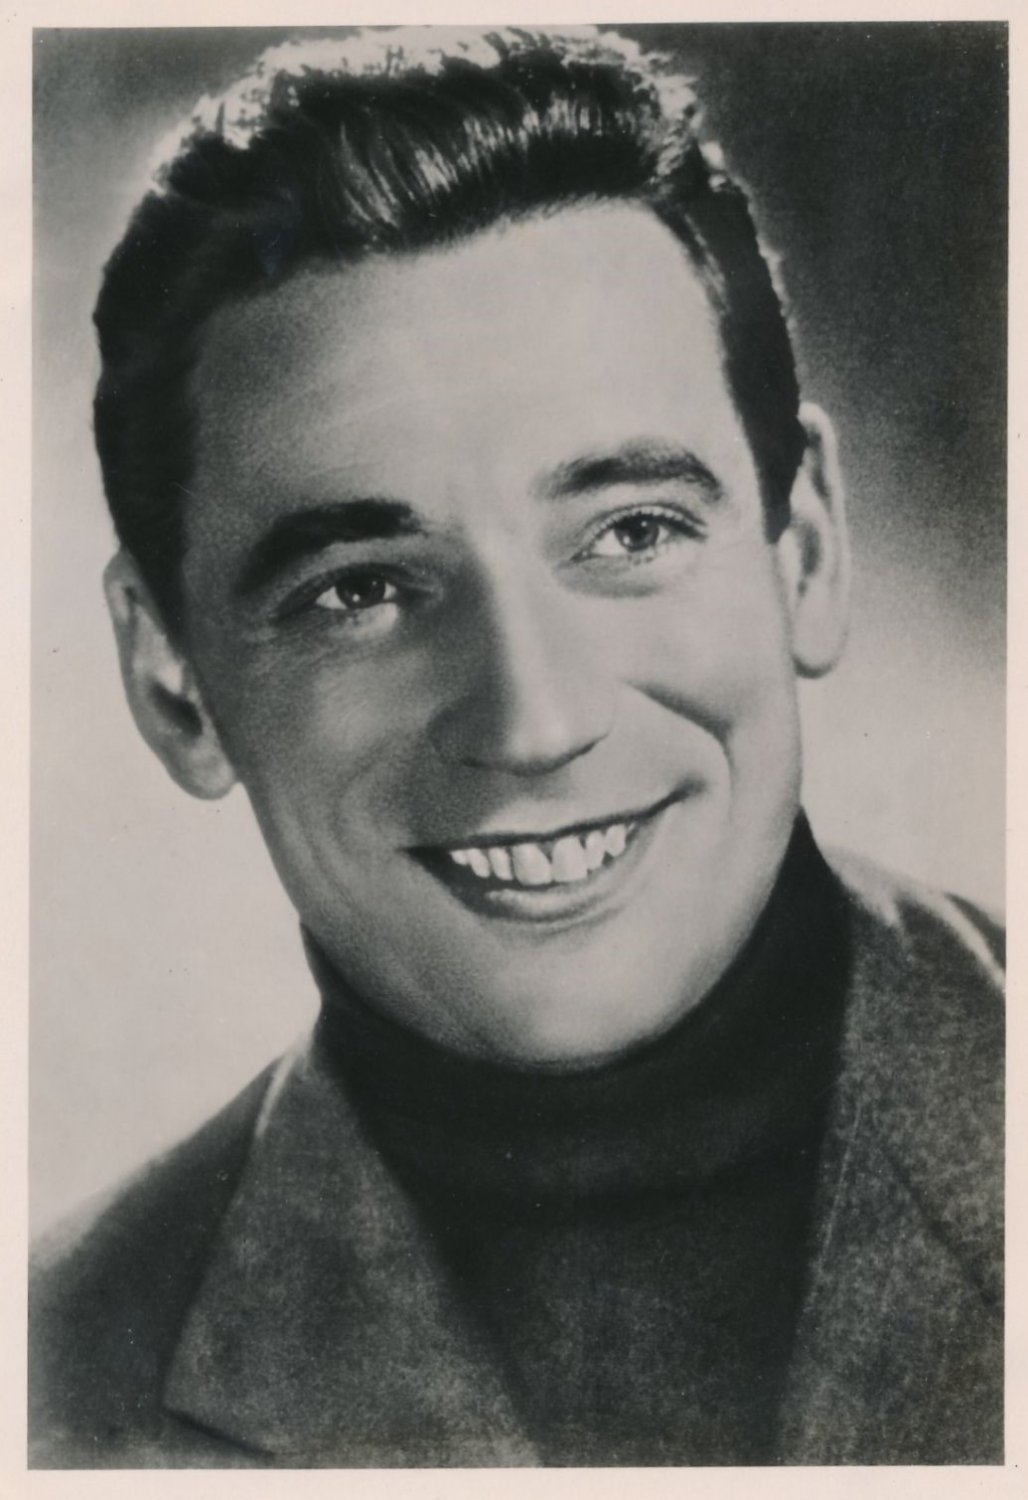 Actor & Singer YVES MONTAND Hand Signed Soviet Photo Card from 1956 SCARCE!